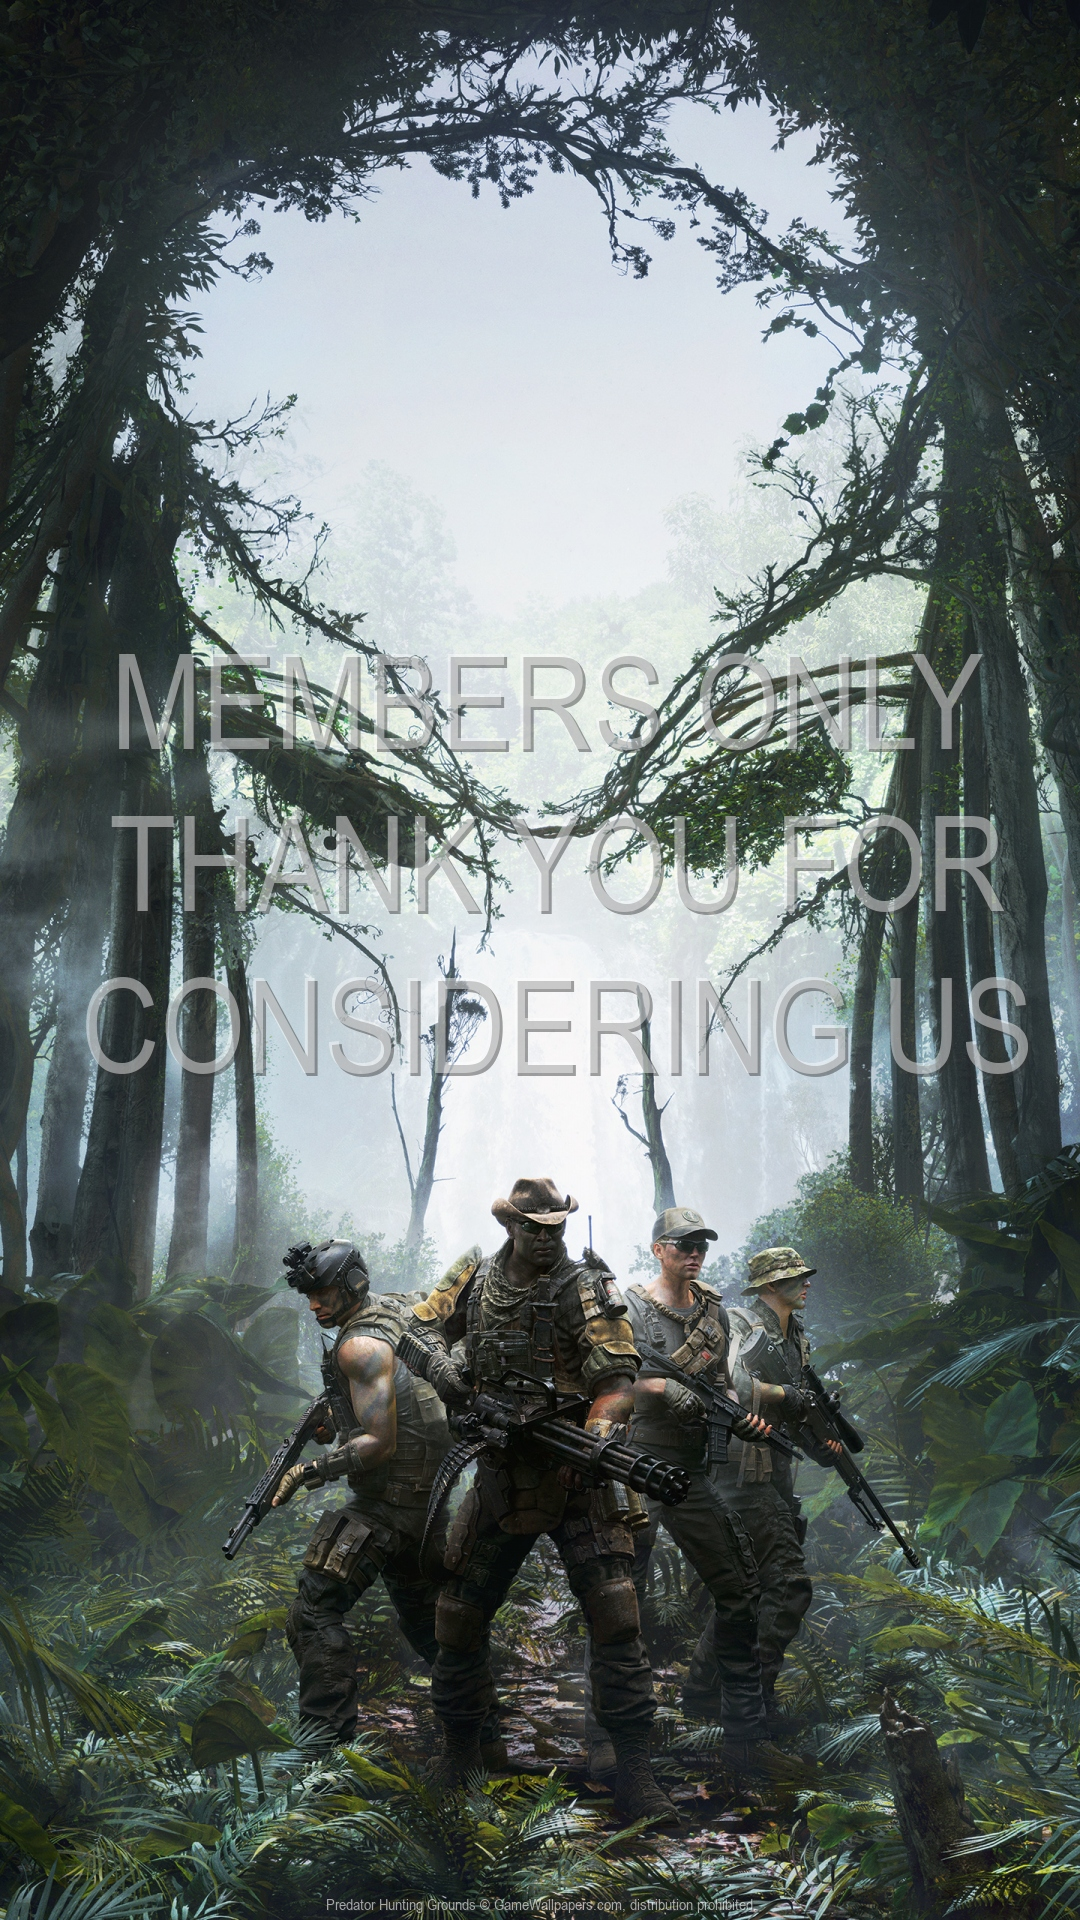 Predator: Hunting Grounds 1920x1080 Mobile wallpaper or background 01